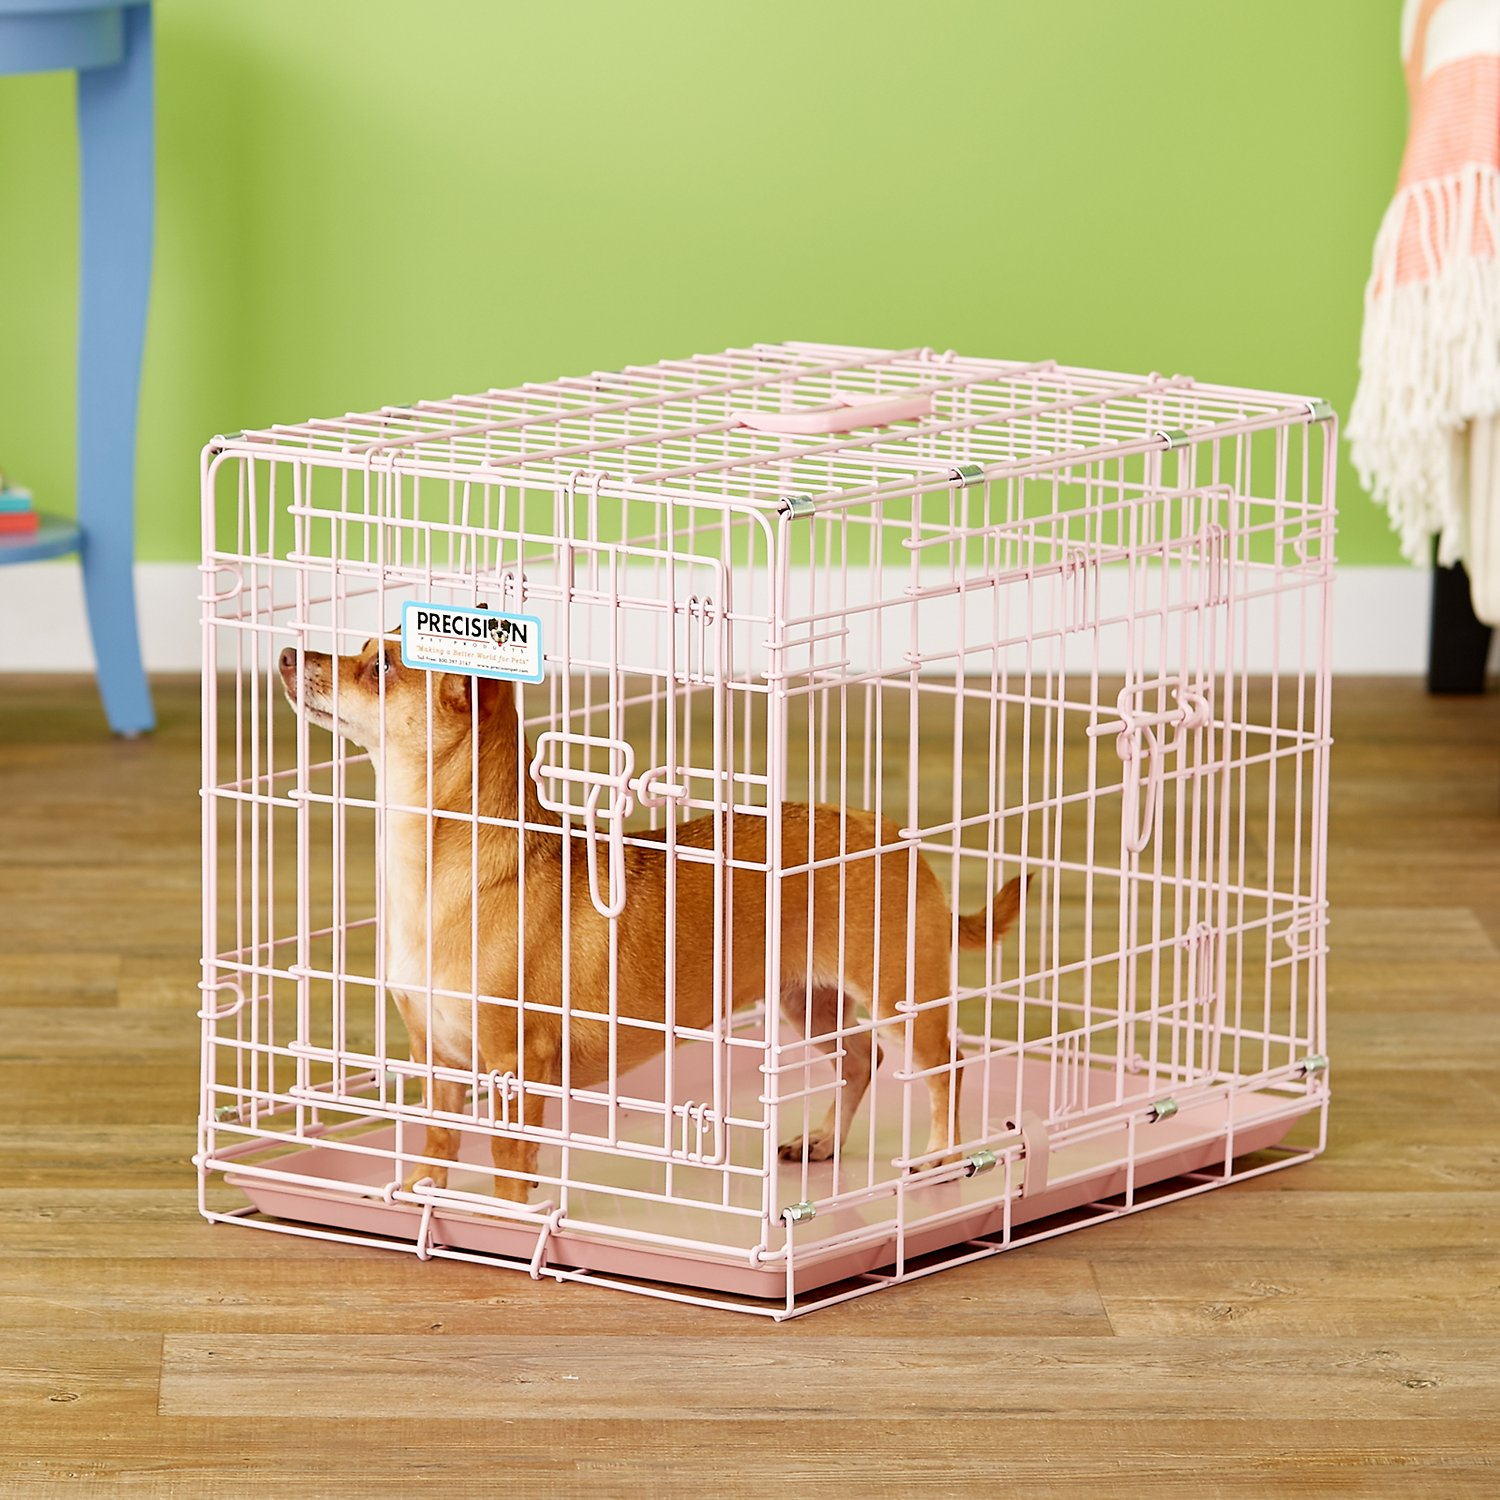 Precision Pet Products Snoozzy Baby Wire Crate, Pink